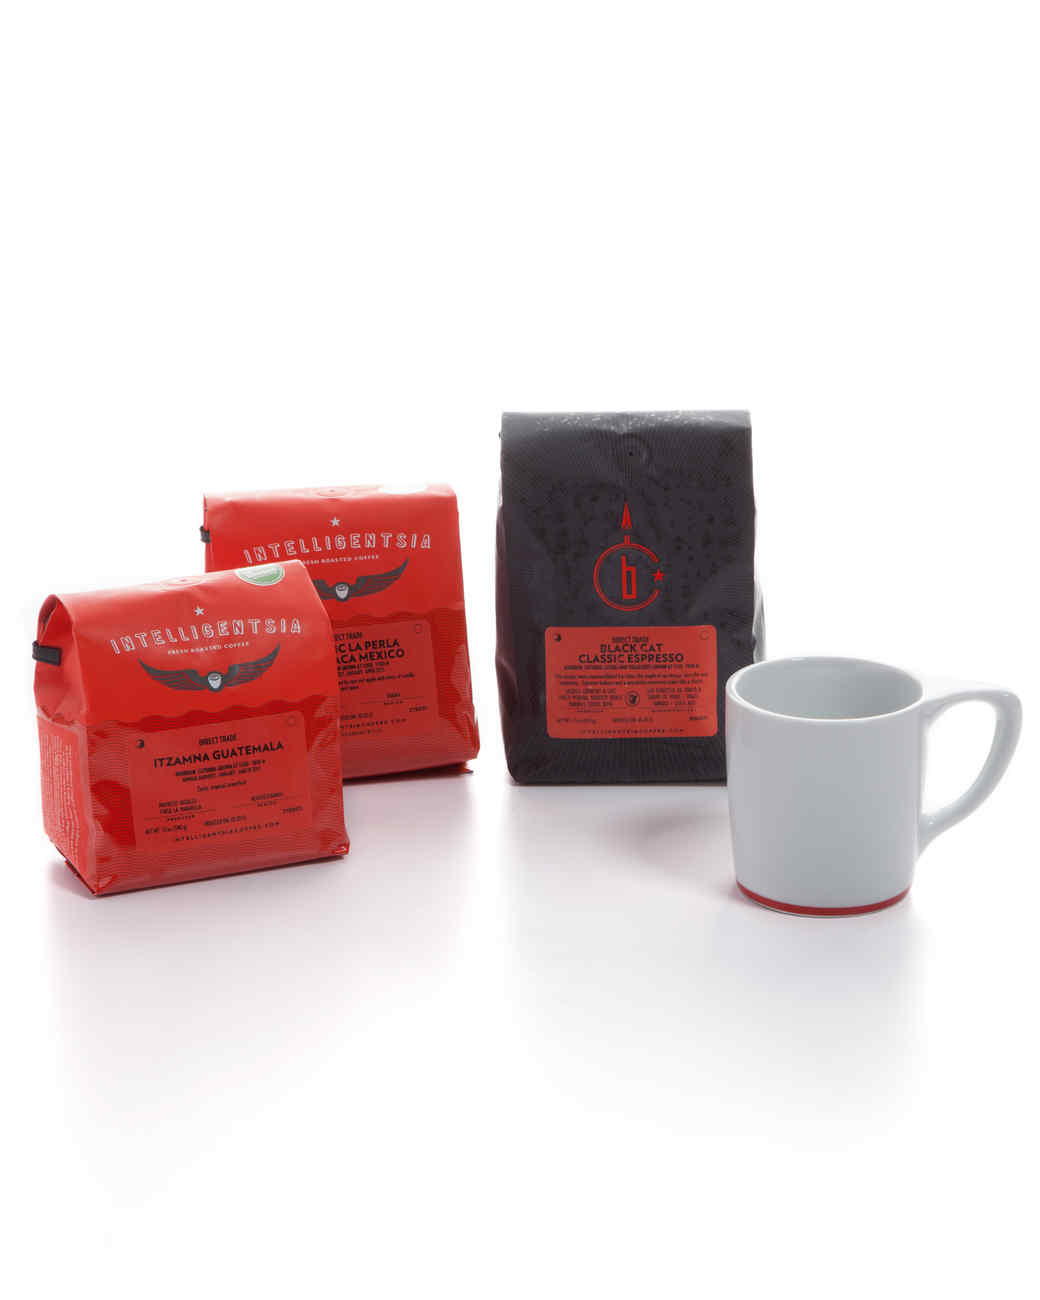 intelligentsia-fathers-day-gift-guide-d110306-0094.jpg